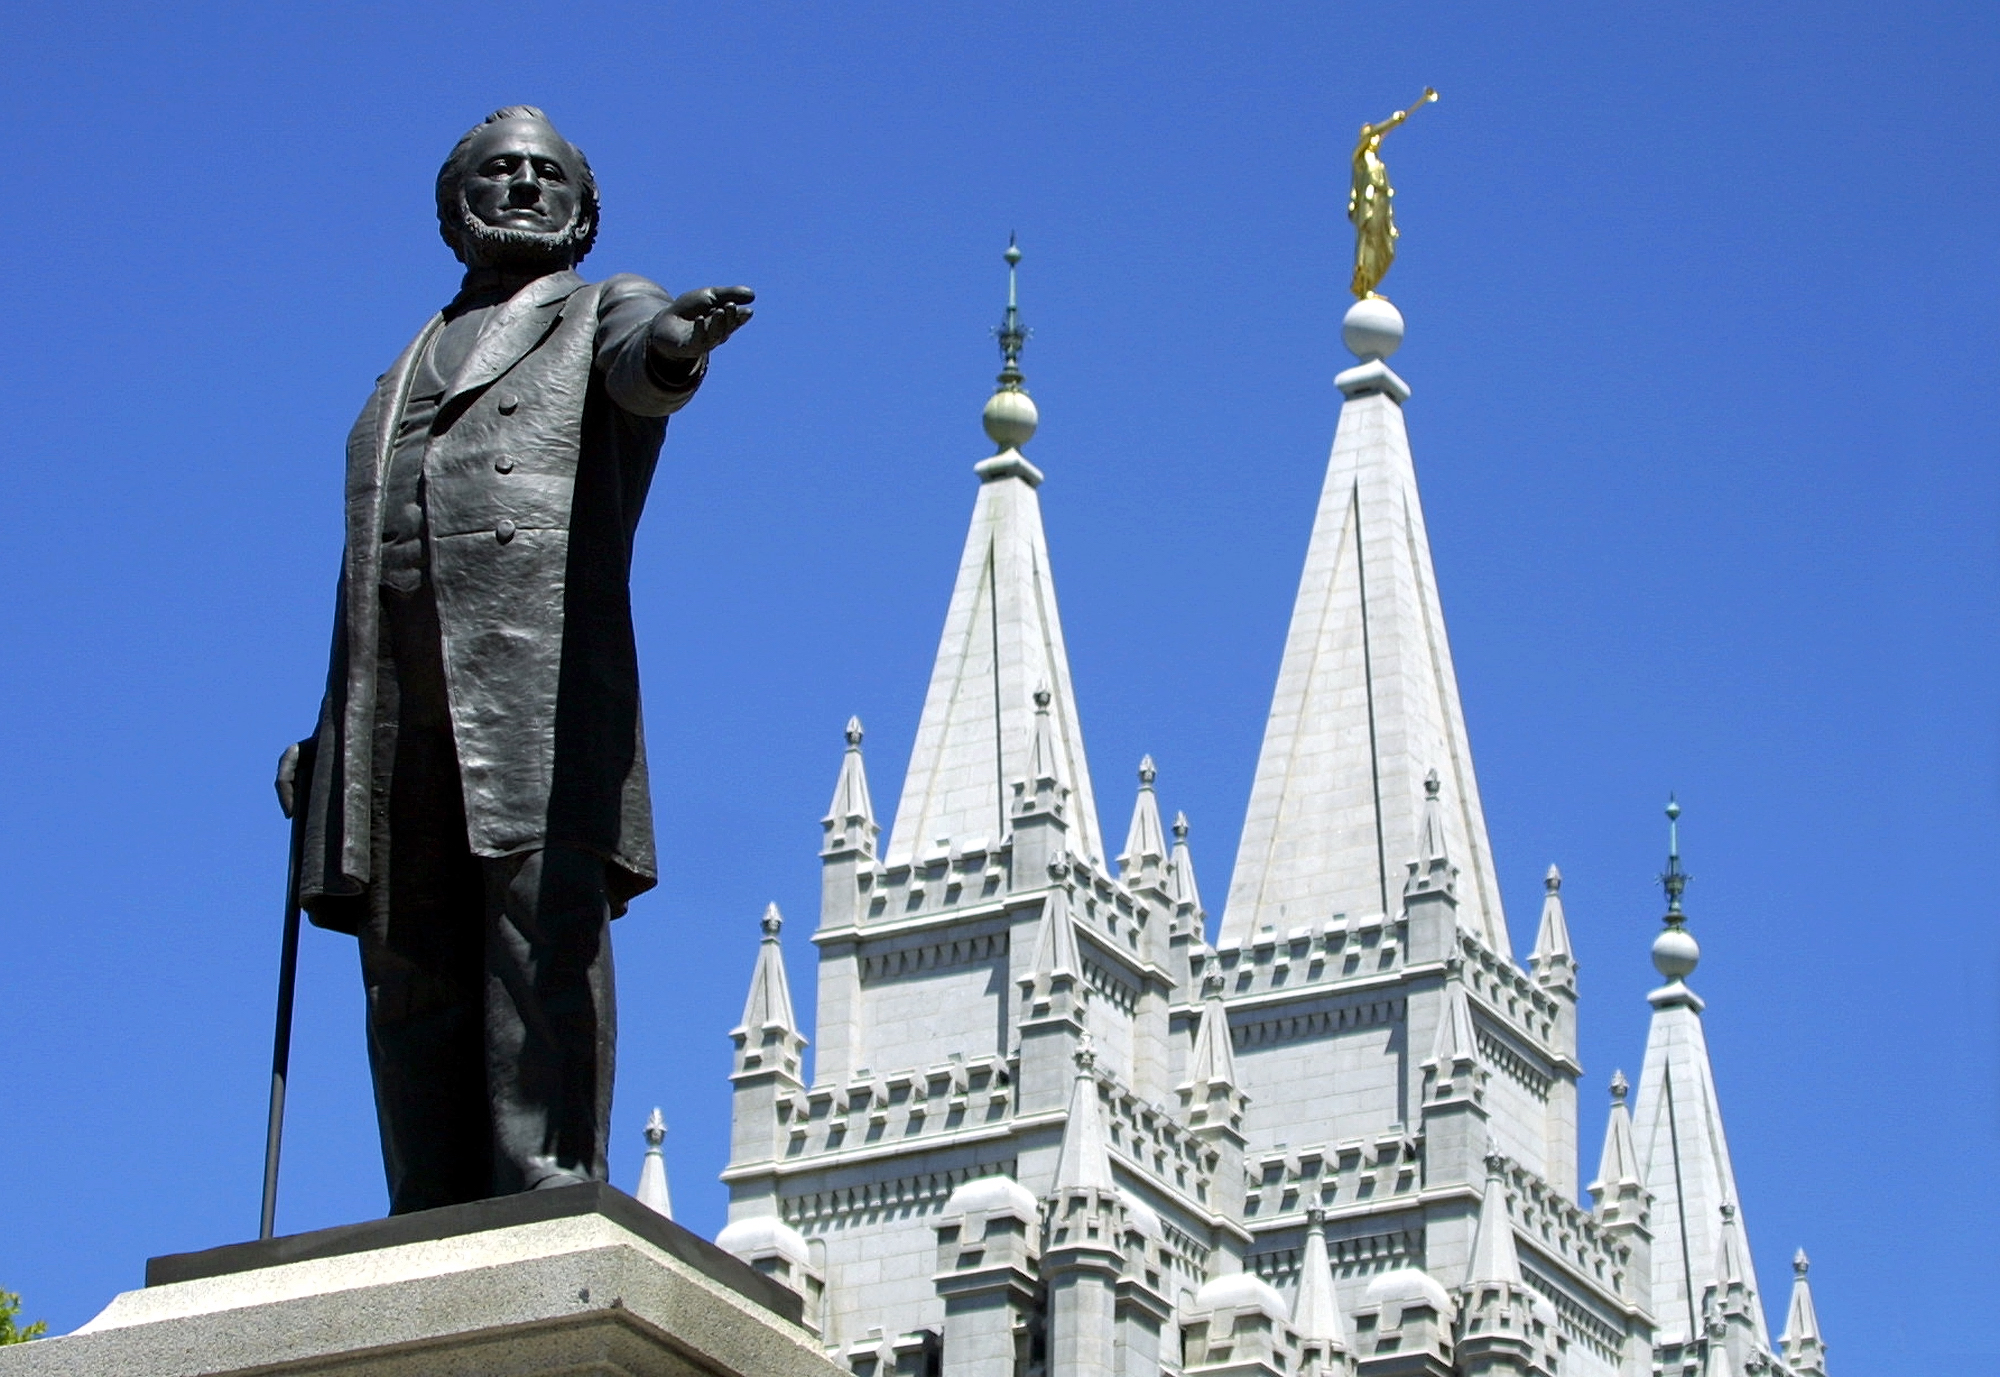 Mormon leaders ask church members to wear face masks in public to defend against coronavirus